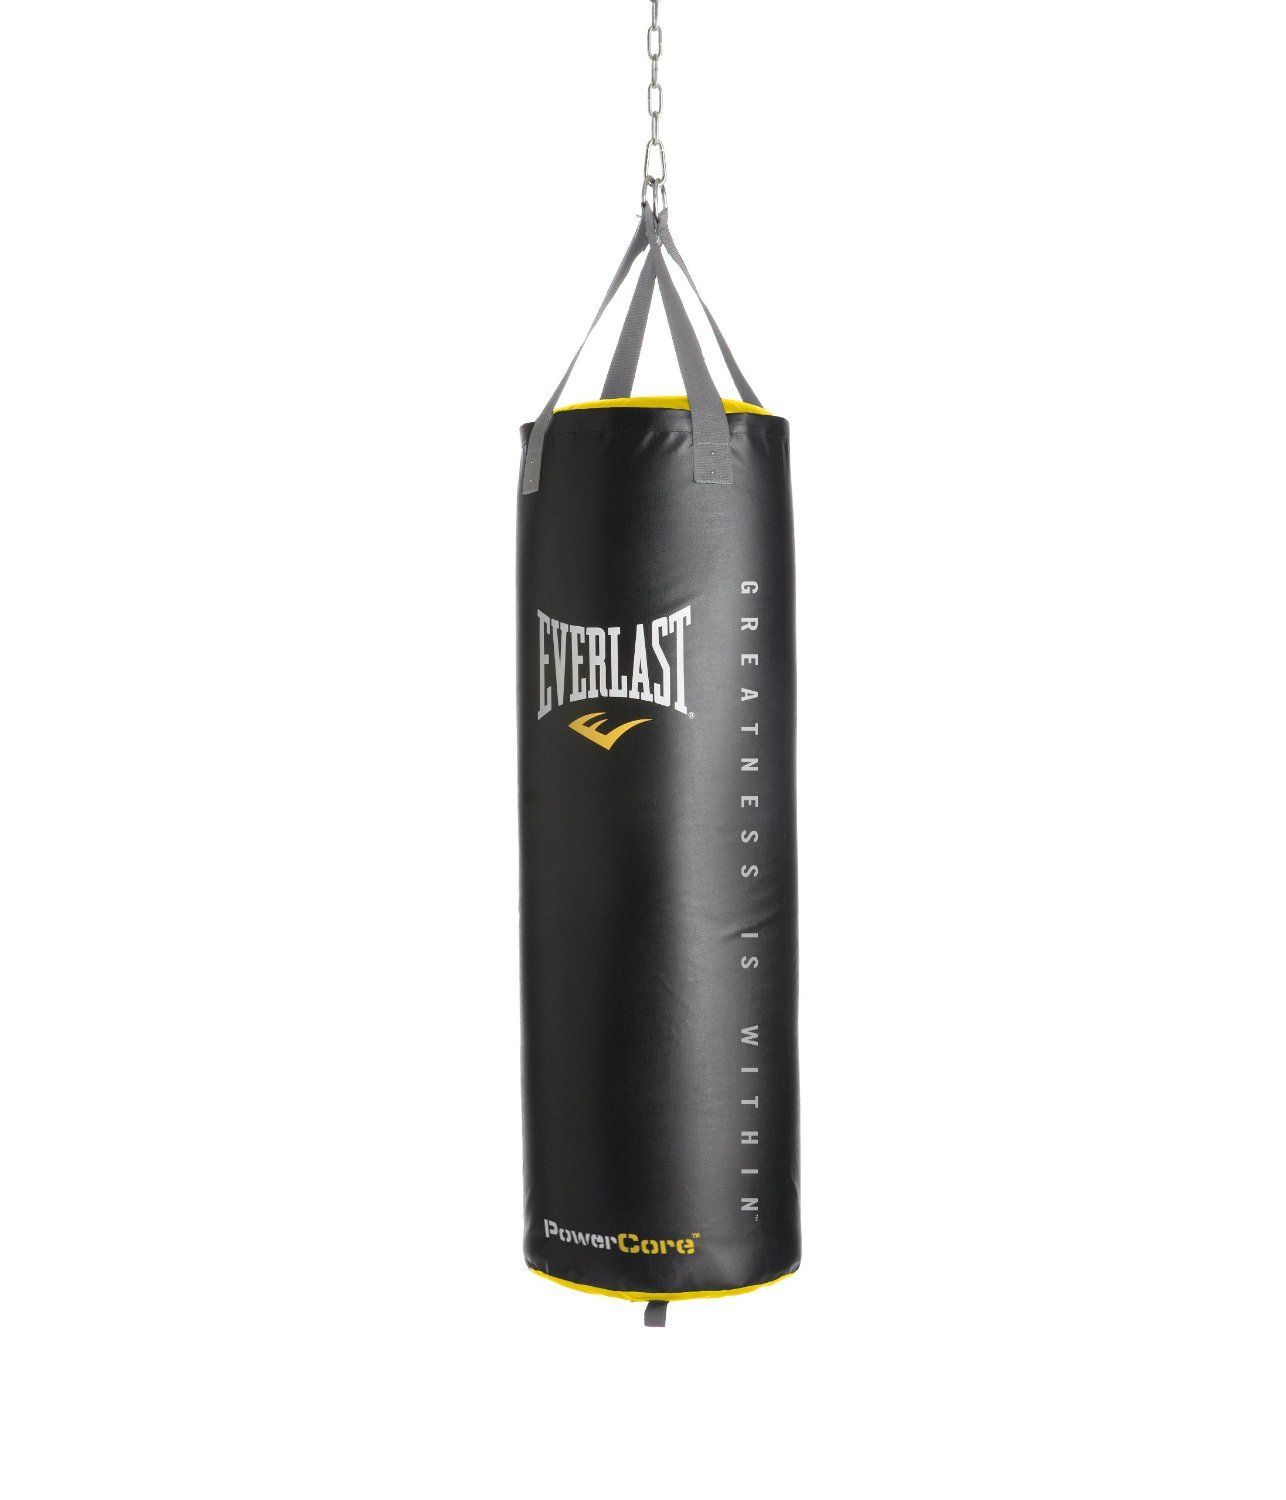 EVERLAST DOUBLE ENDED PUNCH BAG ANCHOR /& BUNGEE Training Boxing Martial Arts MMA